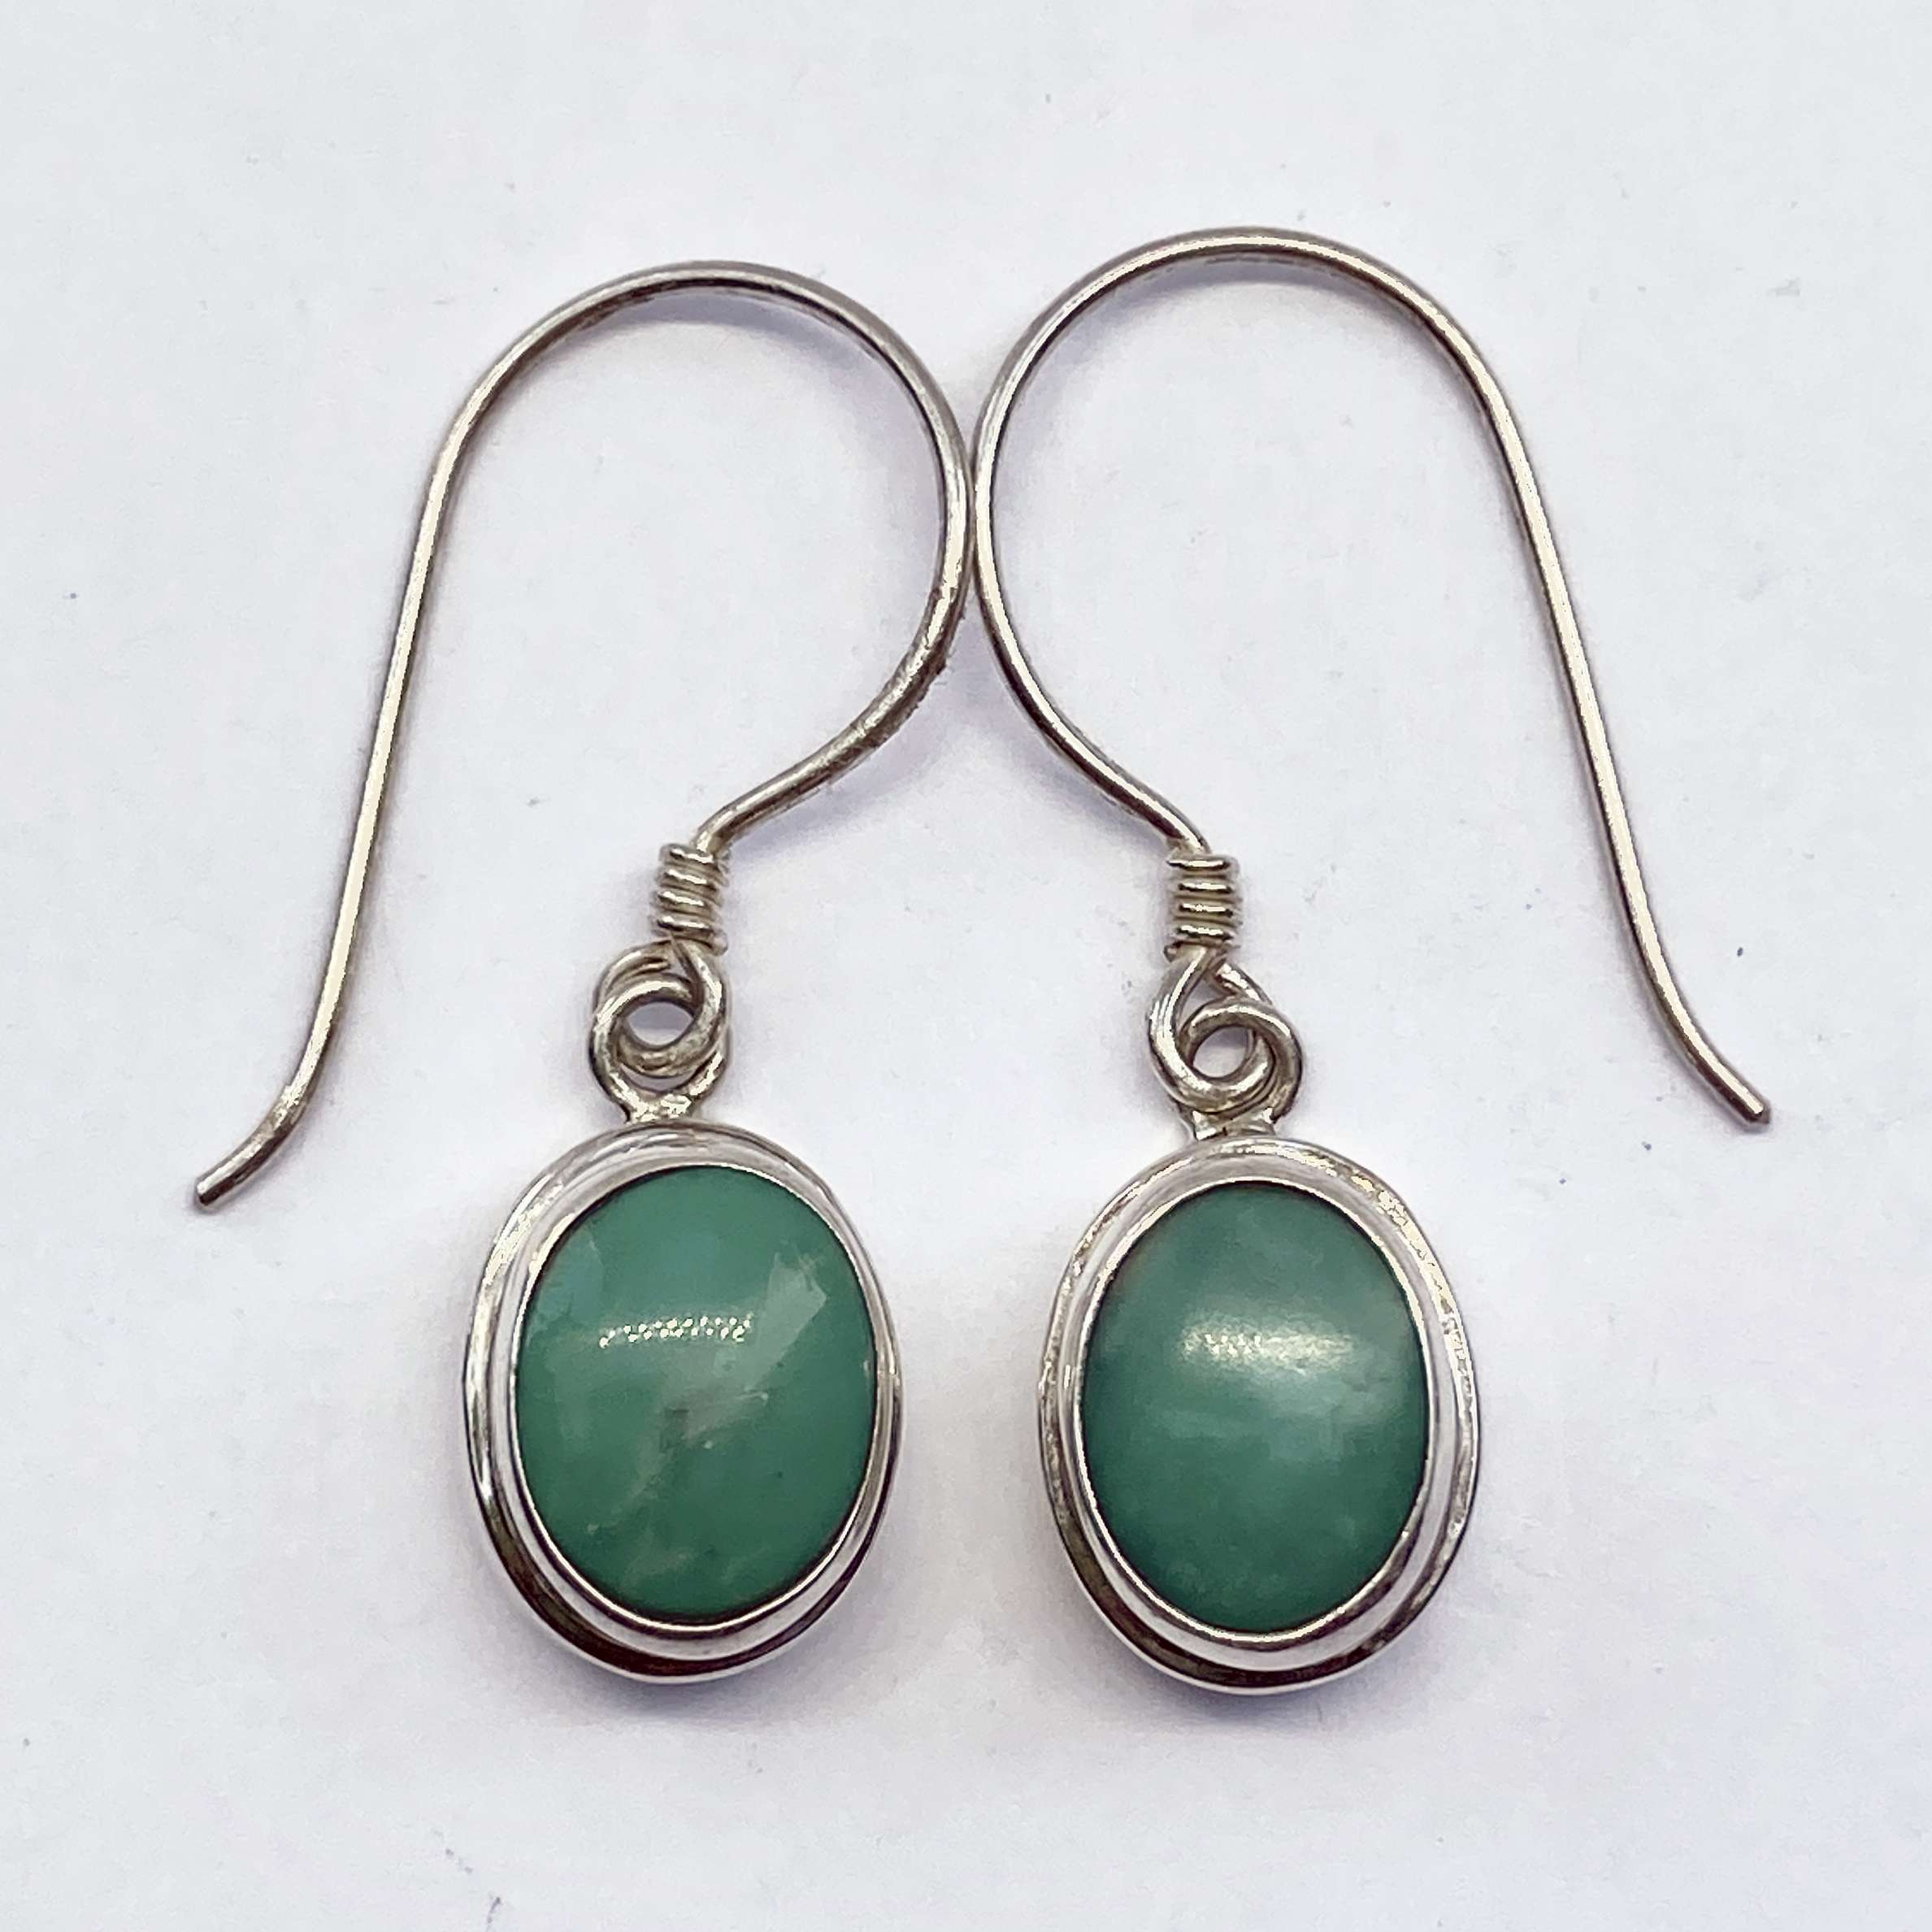 (HANDMADE 925 BALI STERLING SILVER EARRINGS WITH TURQOUISE)